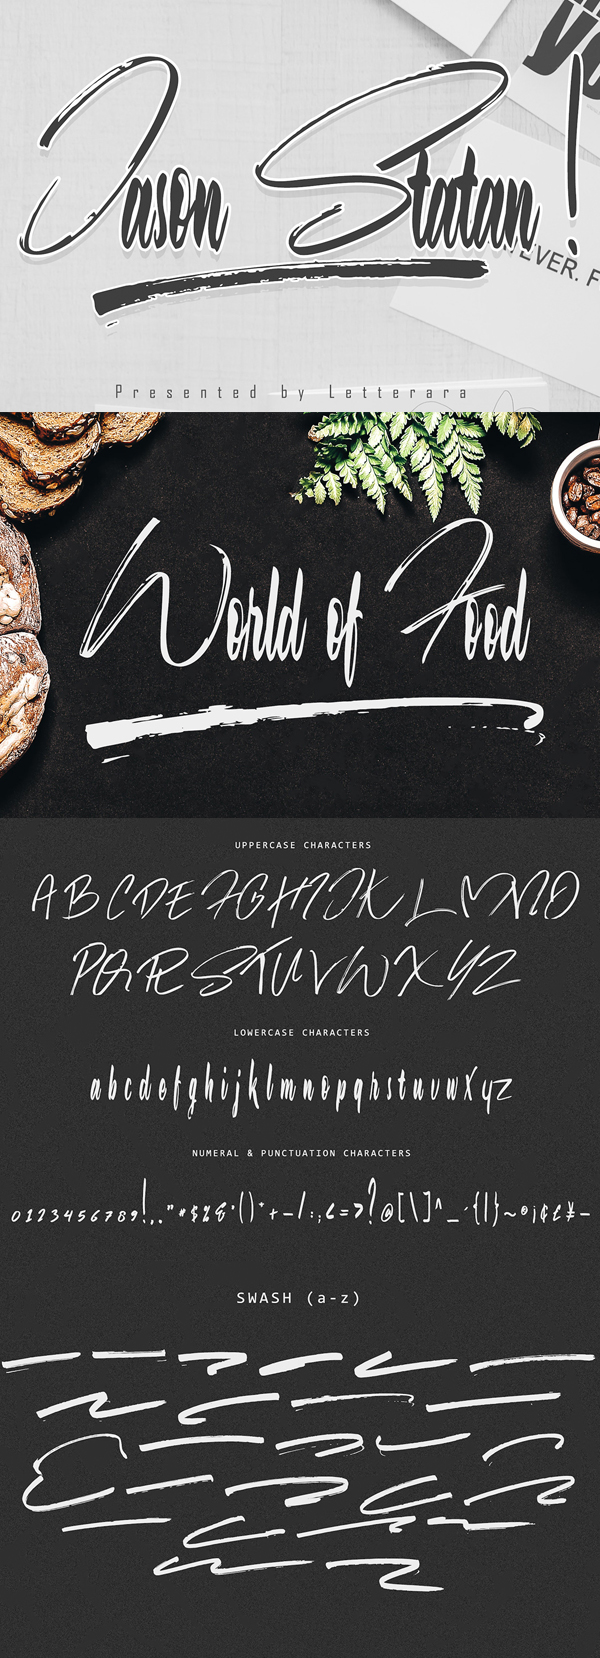 100 Greatest Free Fonts for 2020 - 45